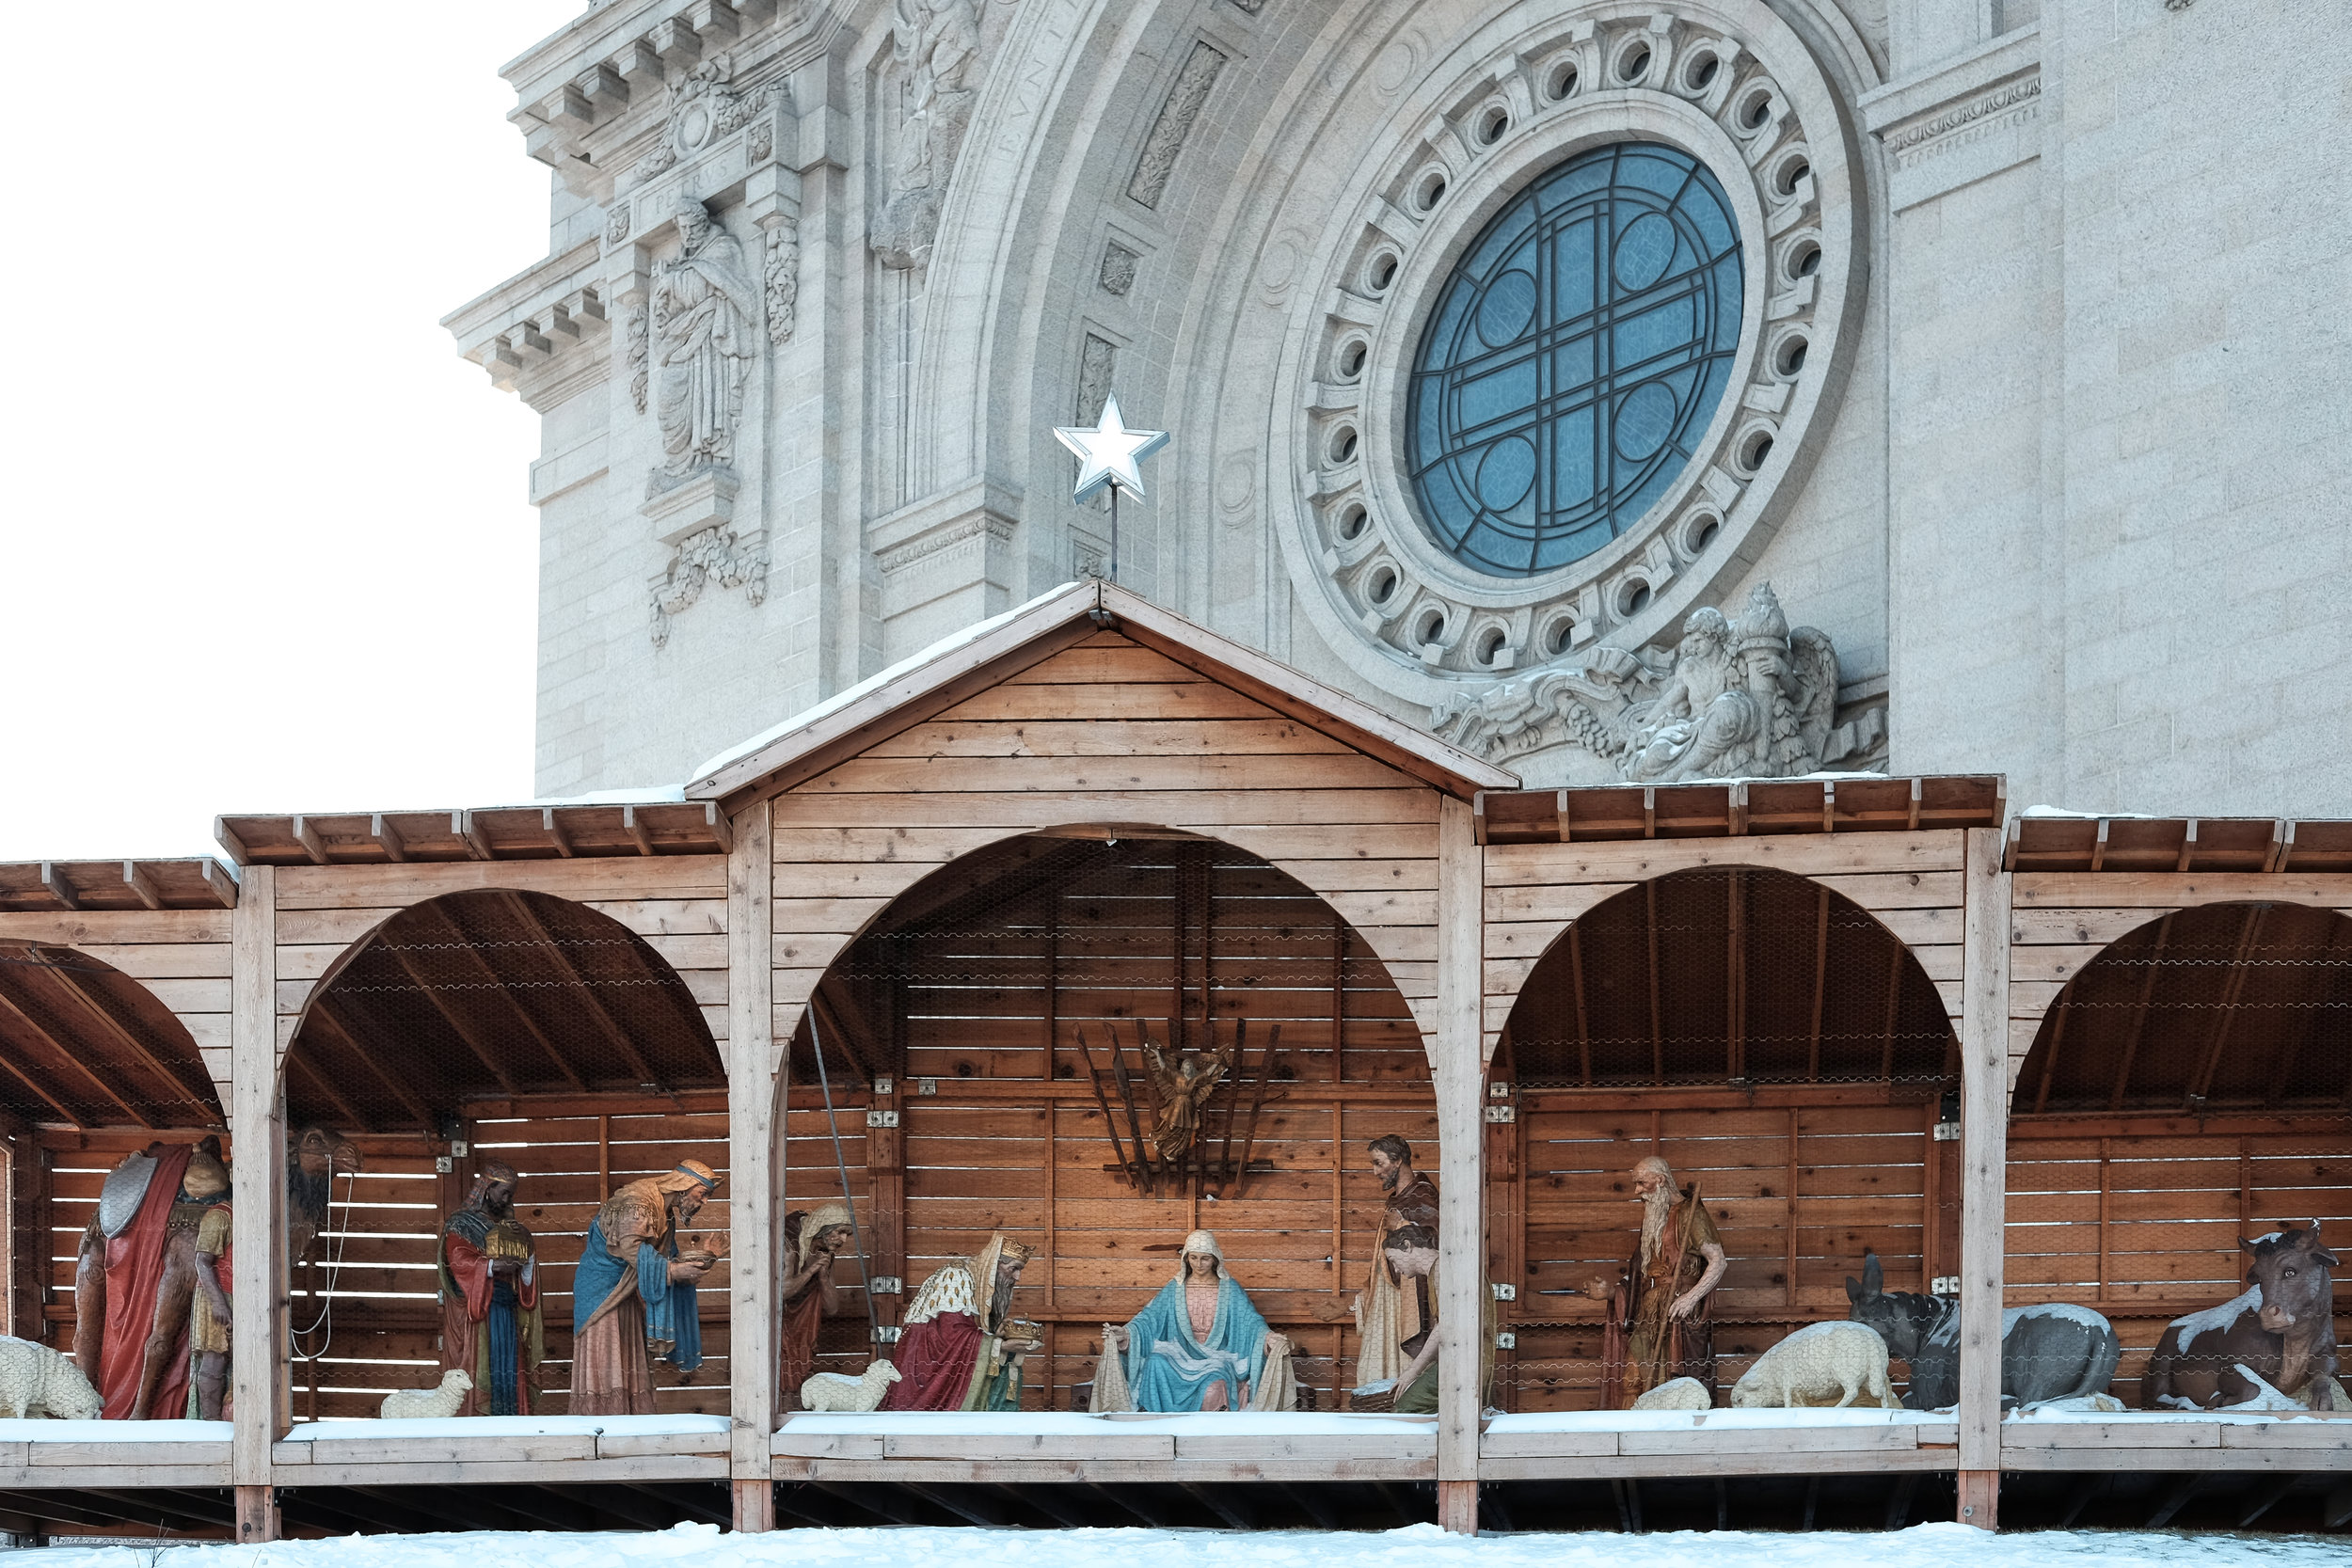 51. Belen, Cathedral of Saint Paul